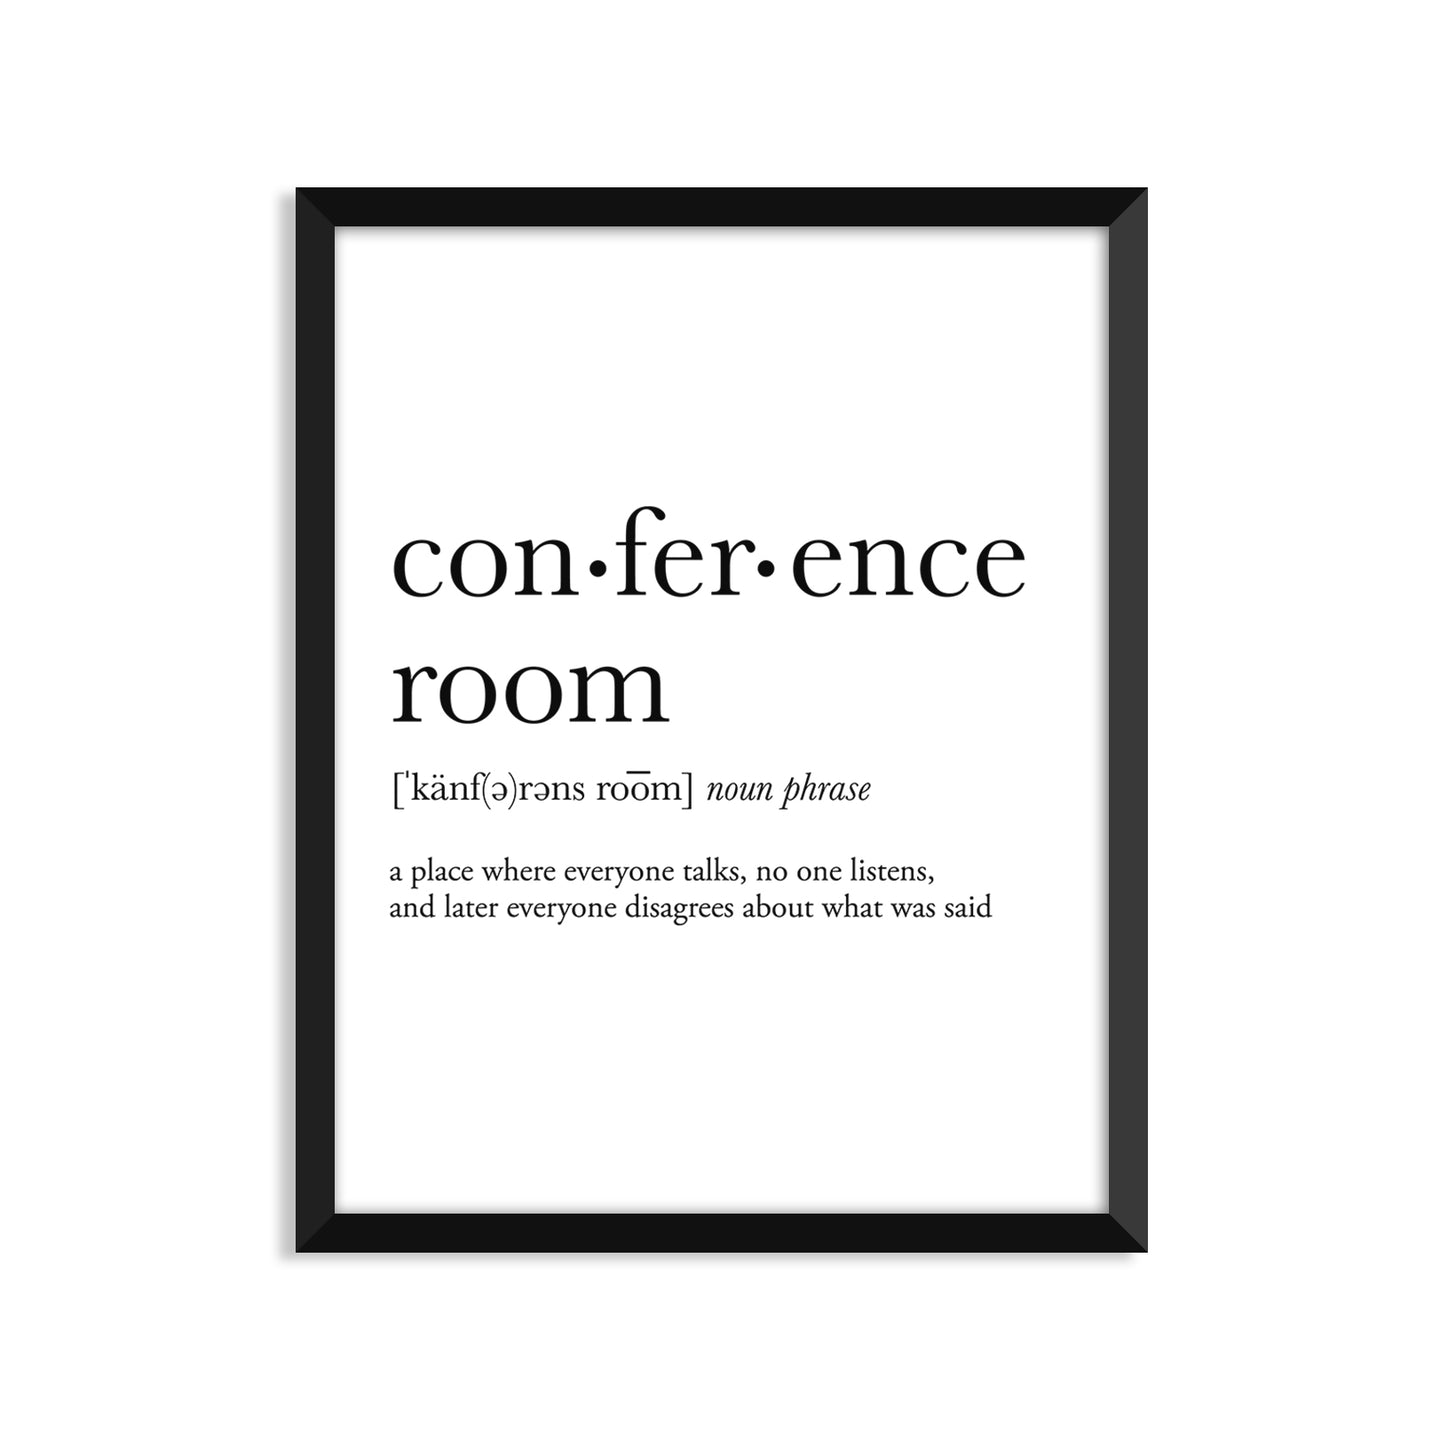 Conference Room Definition - Unframed Art Print Or Greeting Card